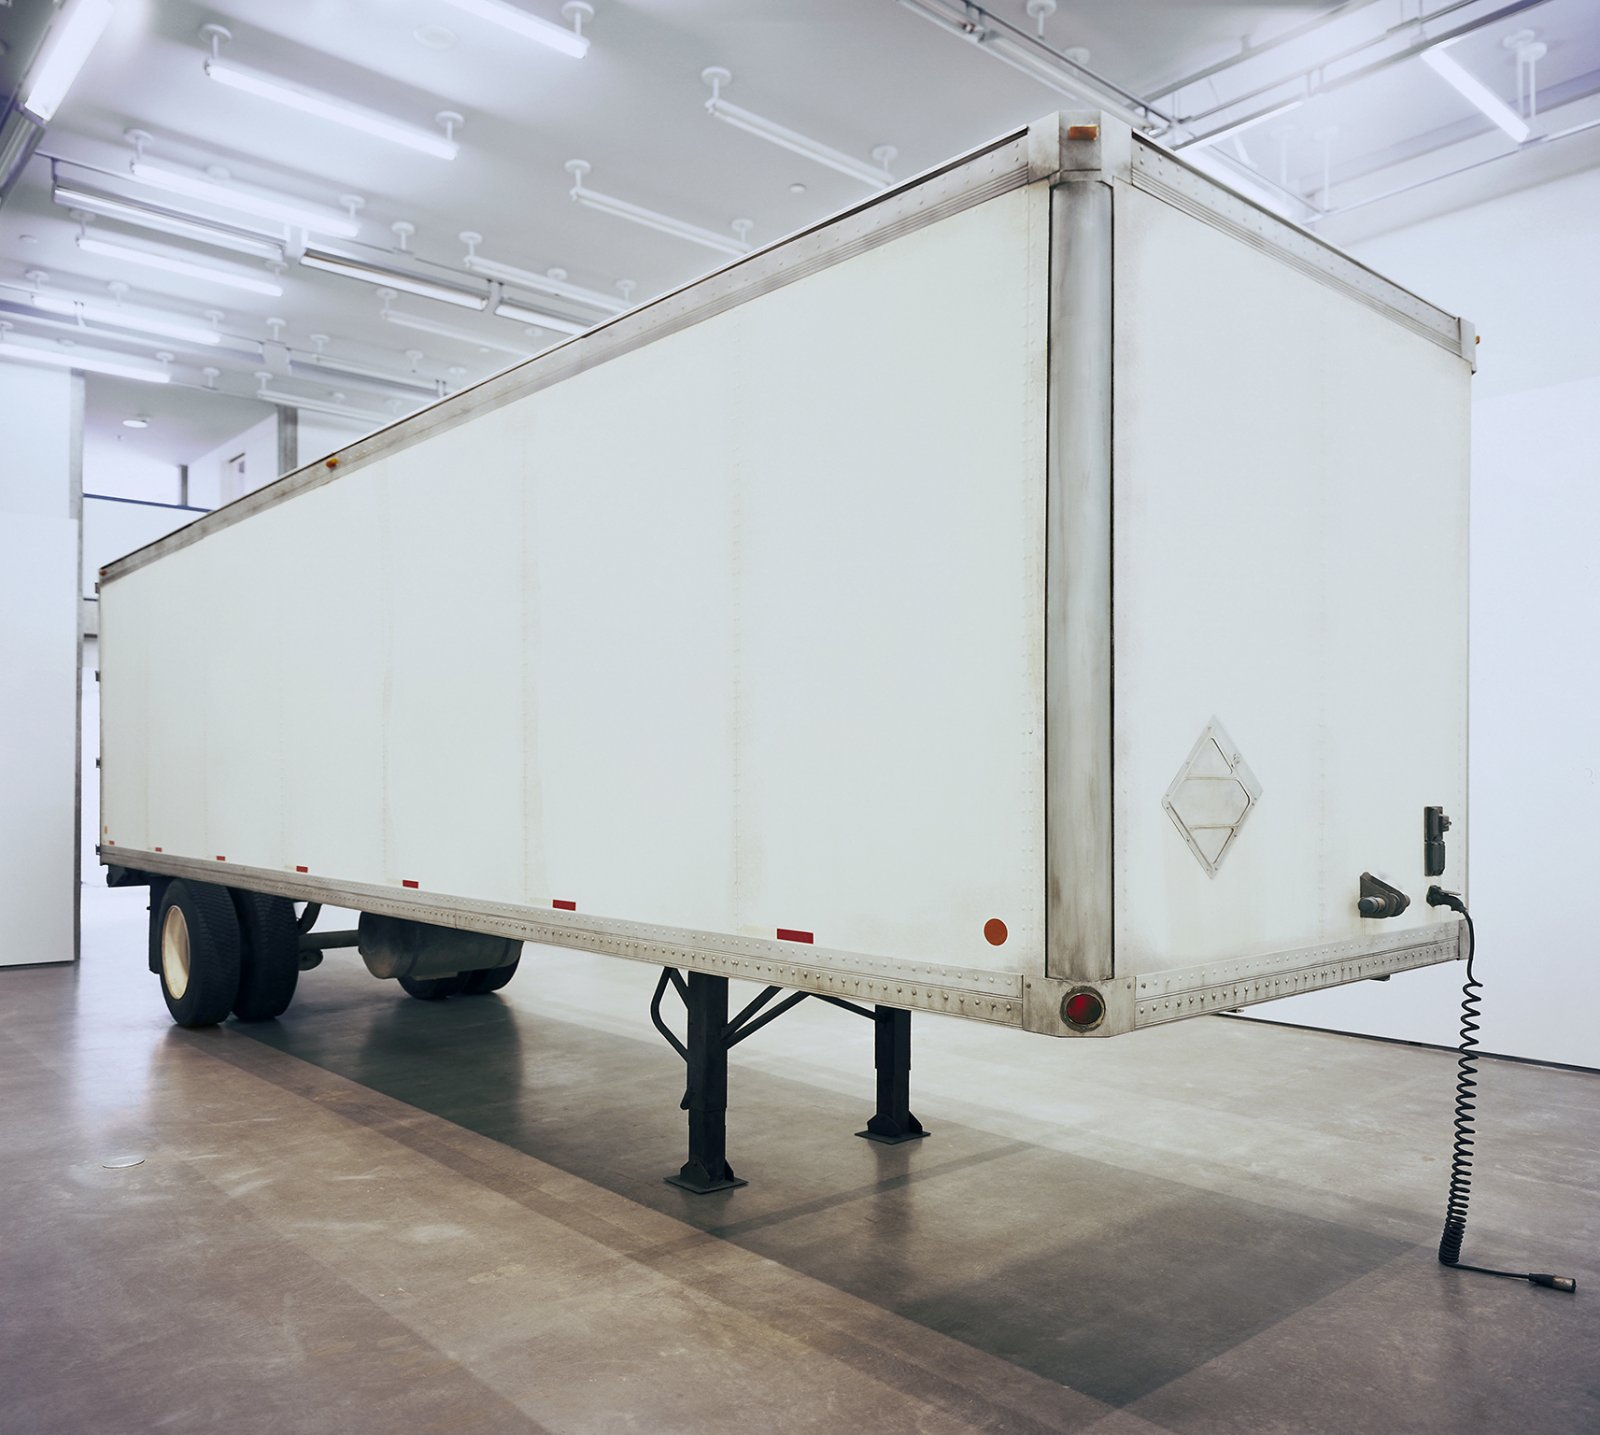 Geoffrey Farmer, Trailer, 2002, steel, fiberboard, mixed media, 134 x 87 x 354 in. (340 x 220 x 900 cm). Installation view, The Blacking Factory, Contemporary Art Gallery, Vancouver, 2002 by Geoffrey Farmer